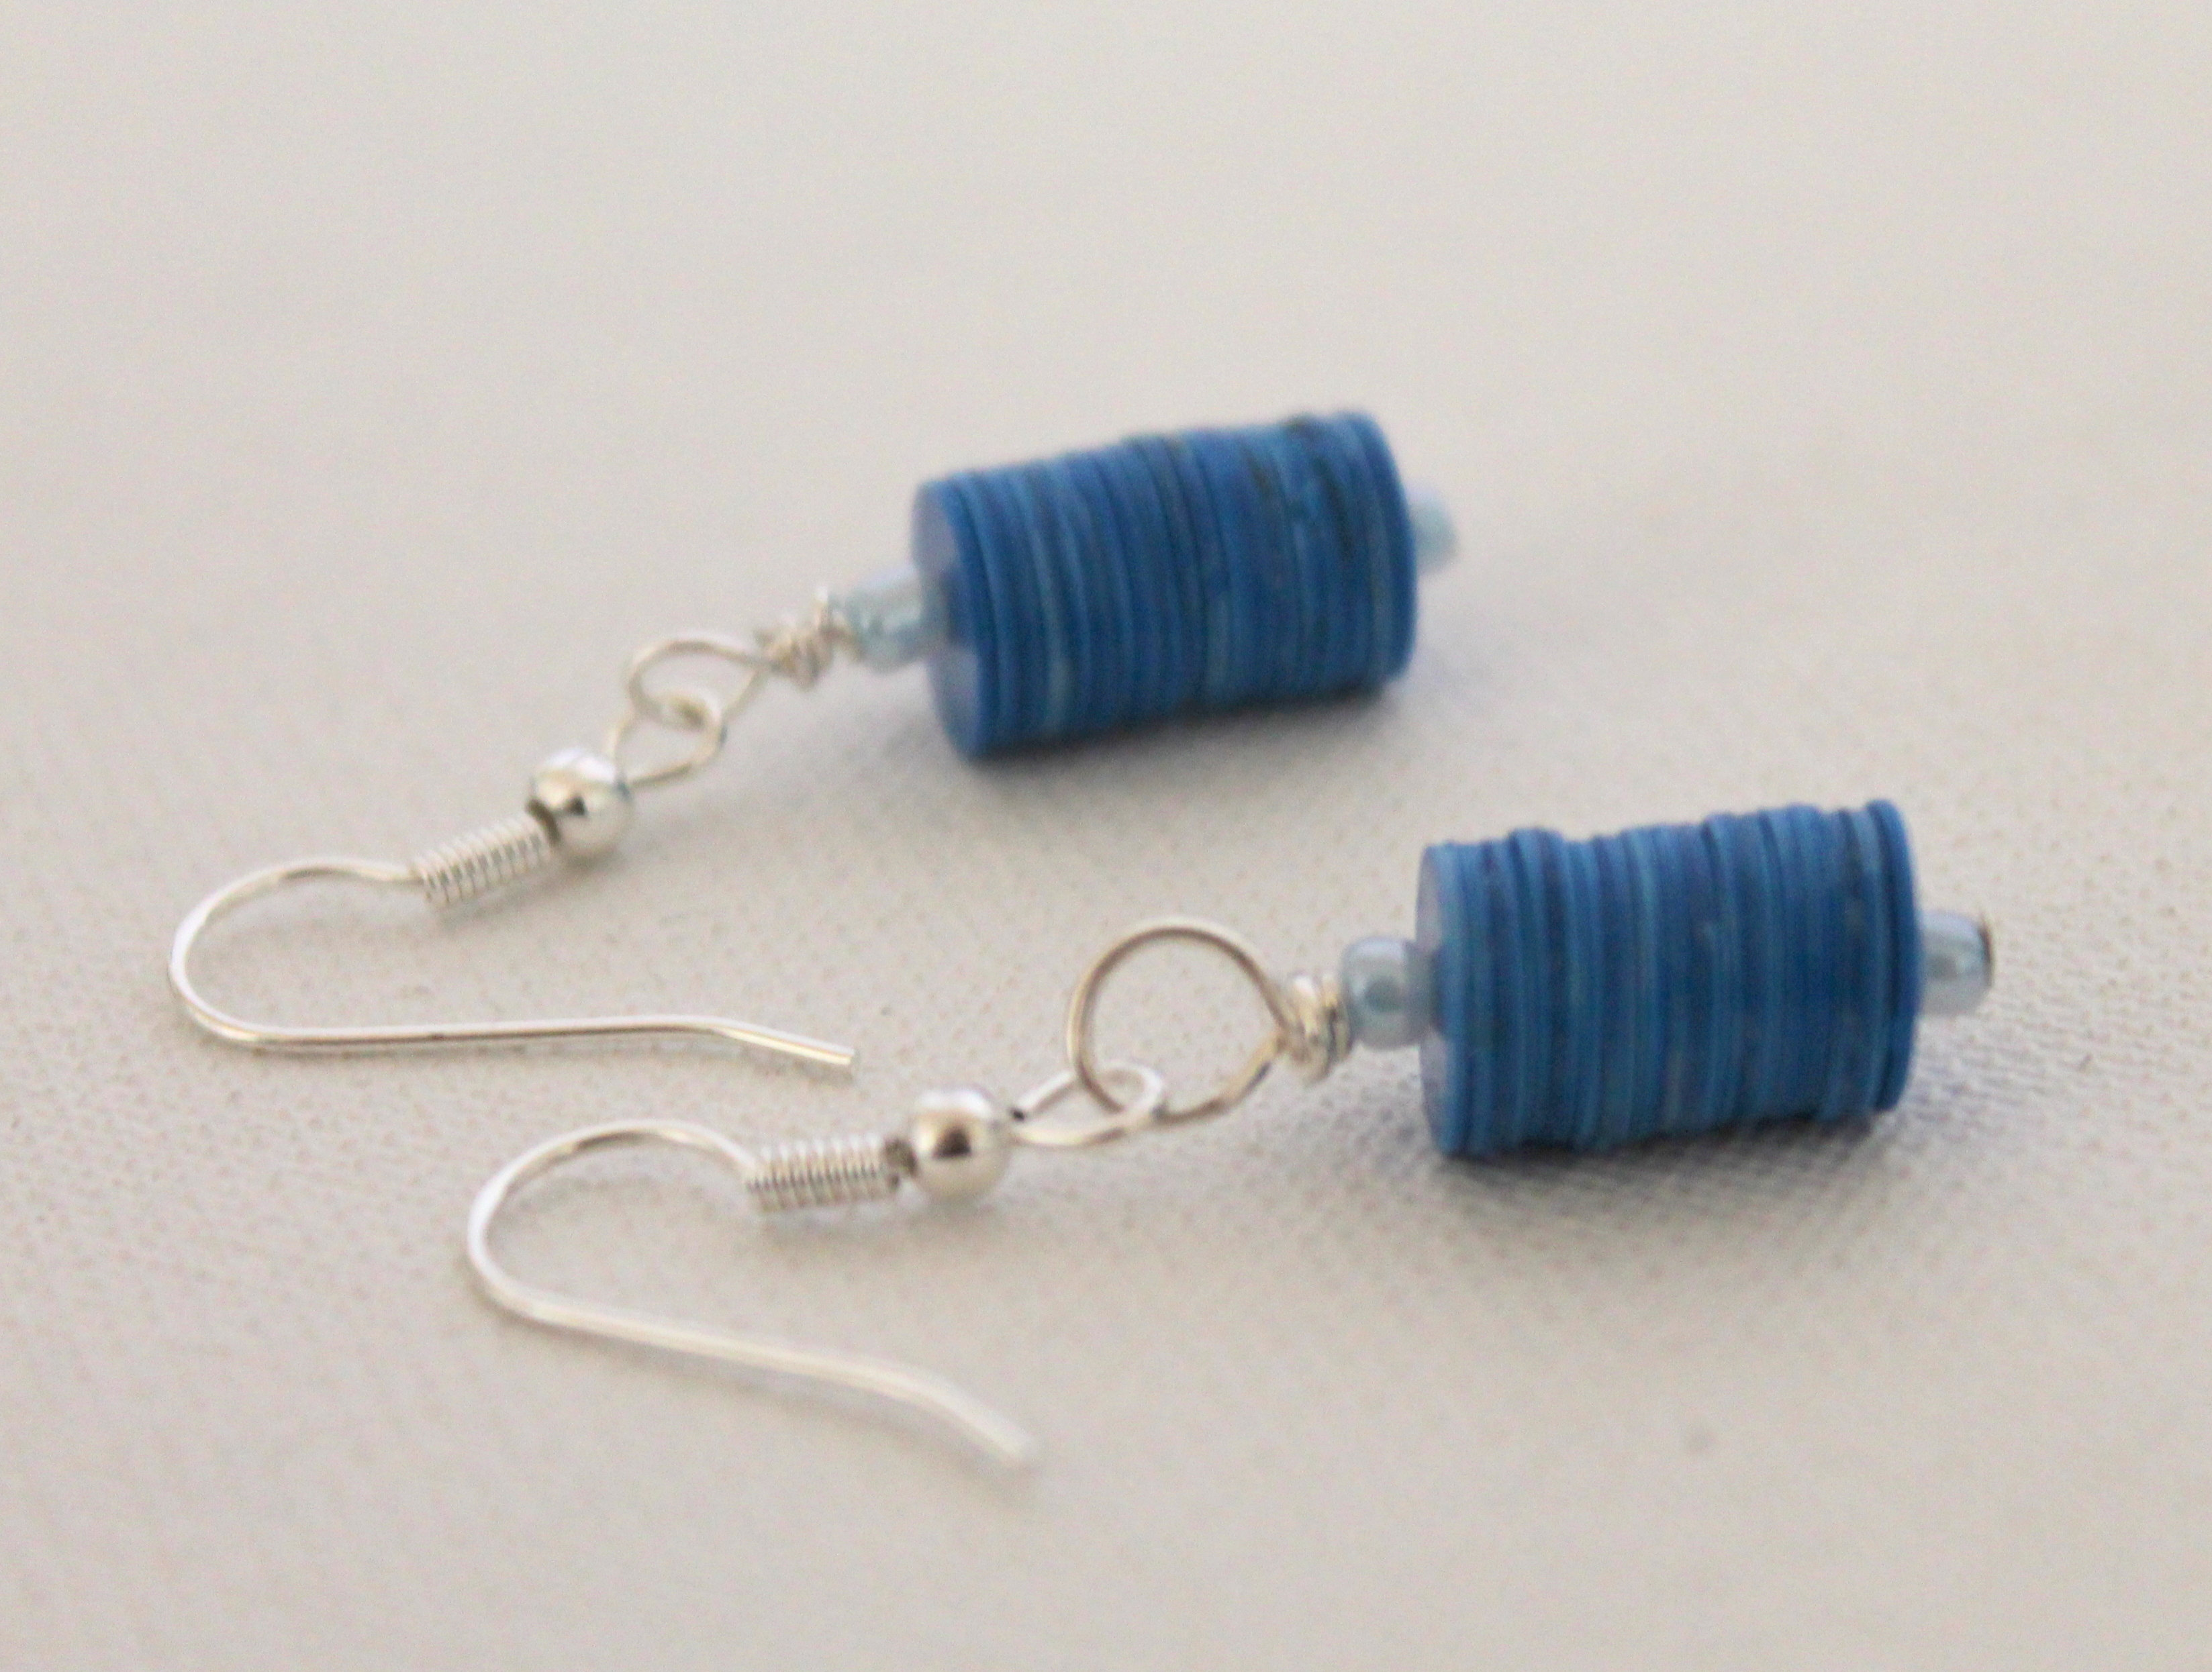 How to Make Dangle Earrings